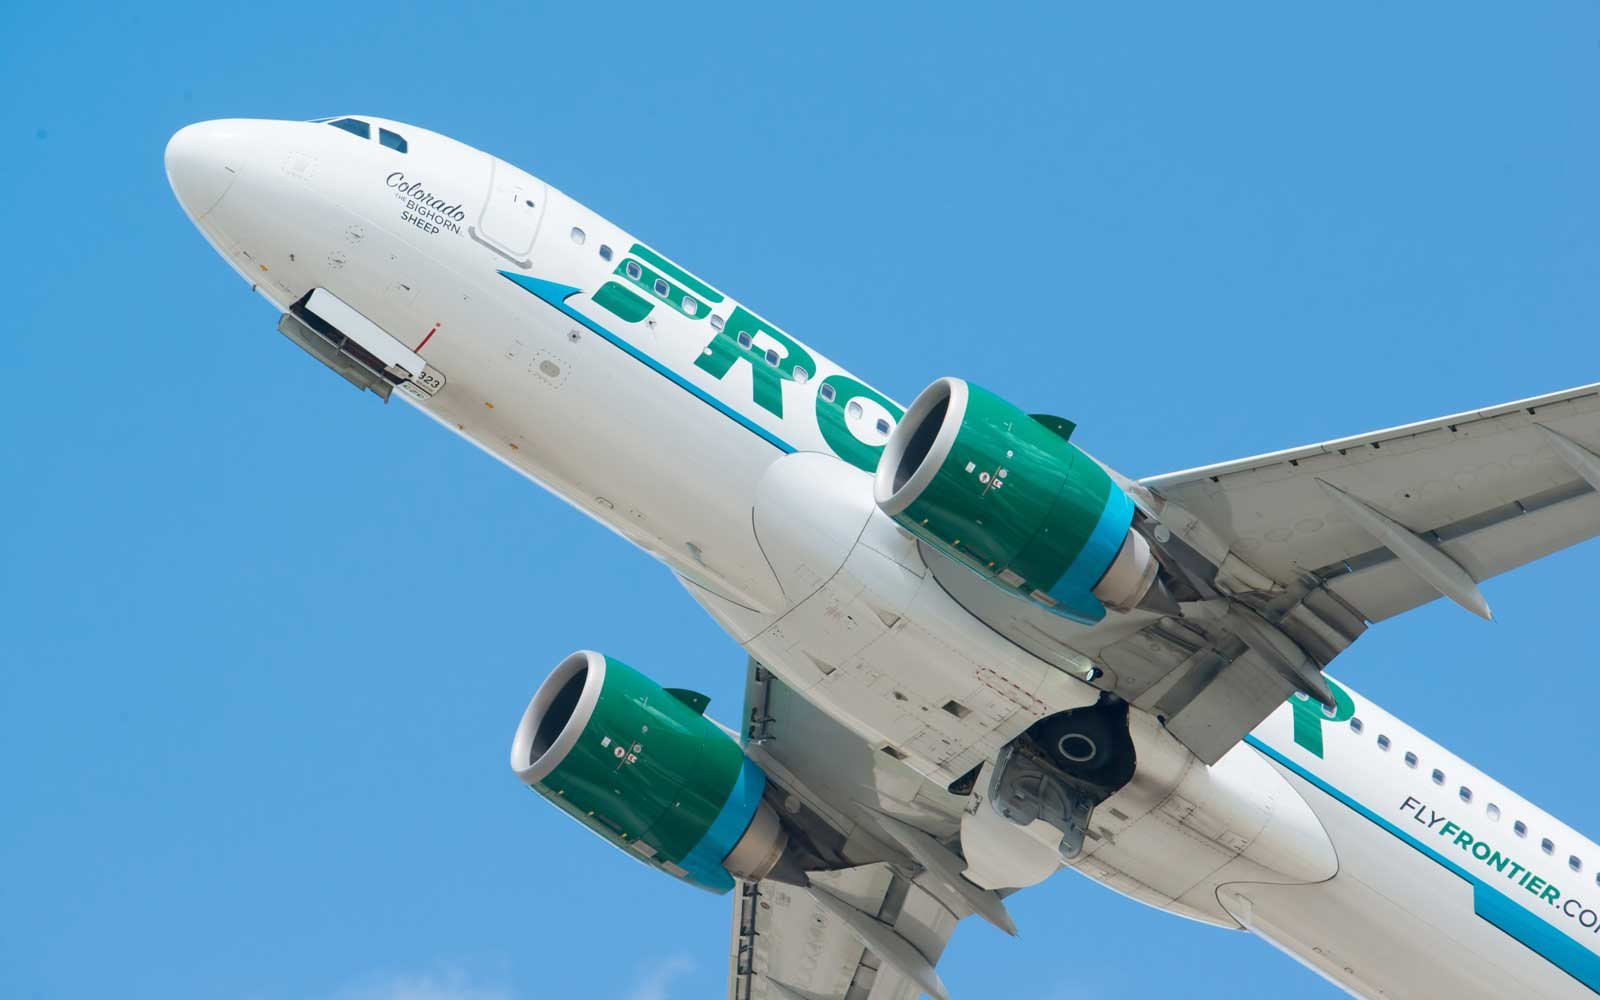 Frontier Airlines accidentally sent an email saying thousands of flights were canceled